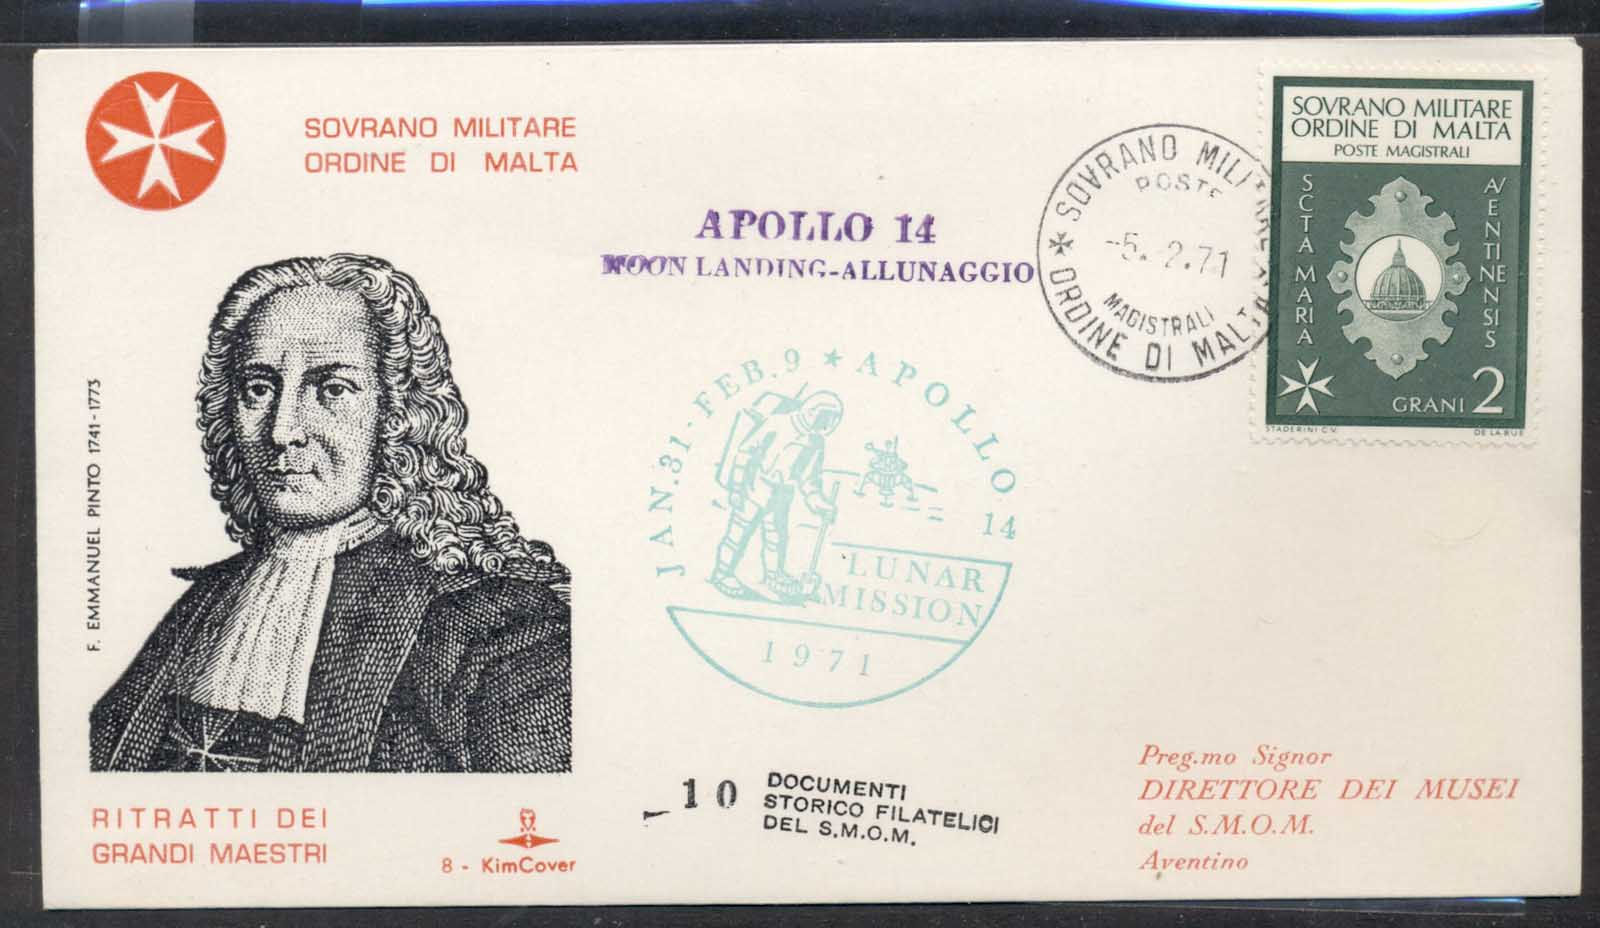 Malta 1971 Sovereign Military Order Apollo 14 Moon Landing FDC